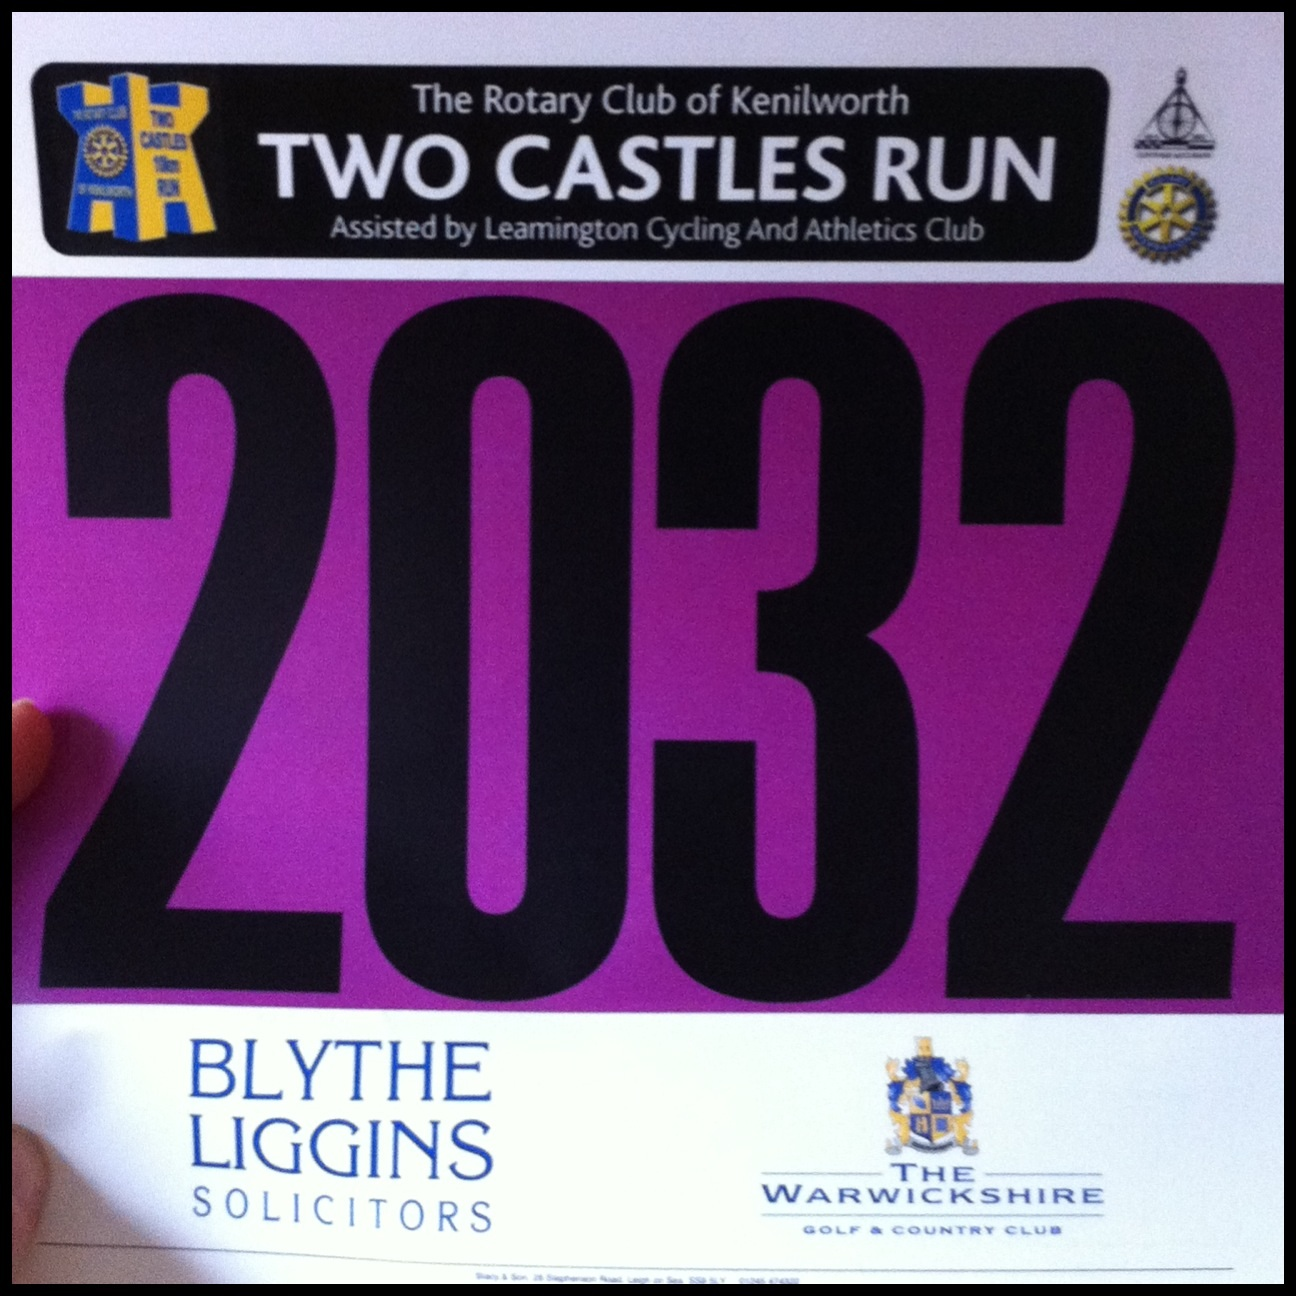 Next Race: Two Castles Run